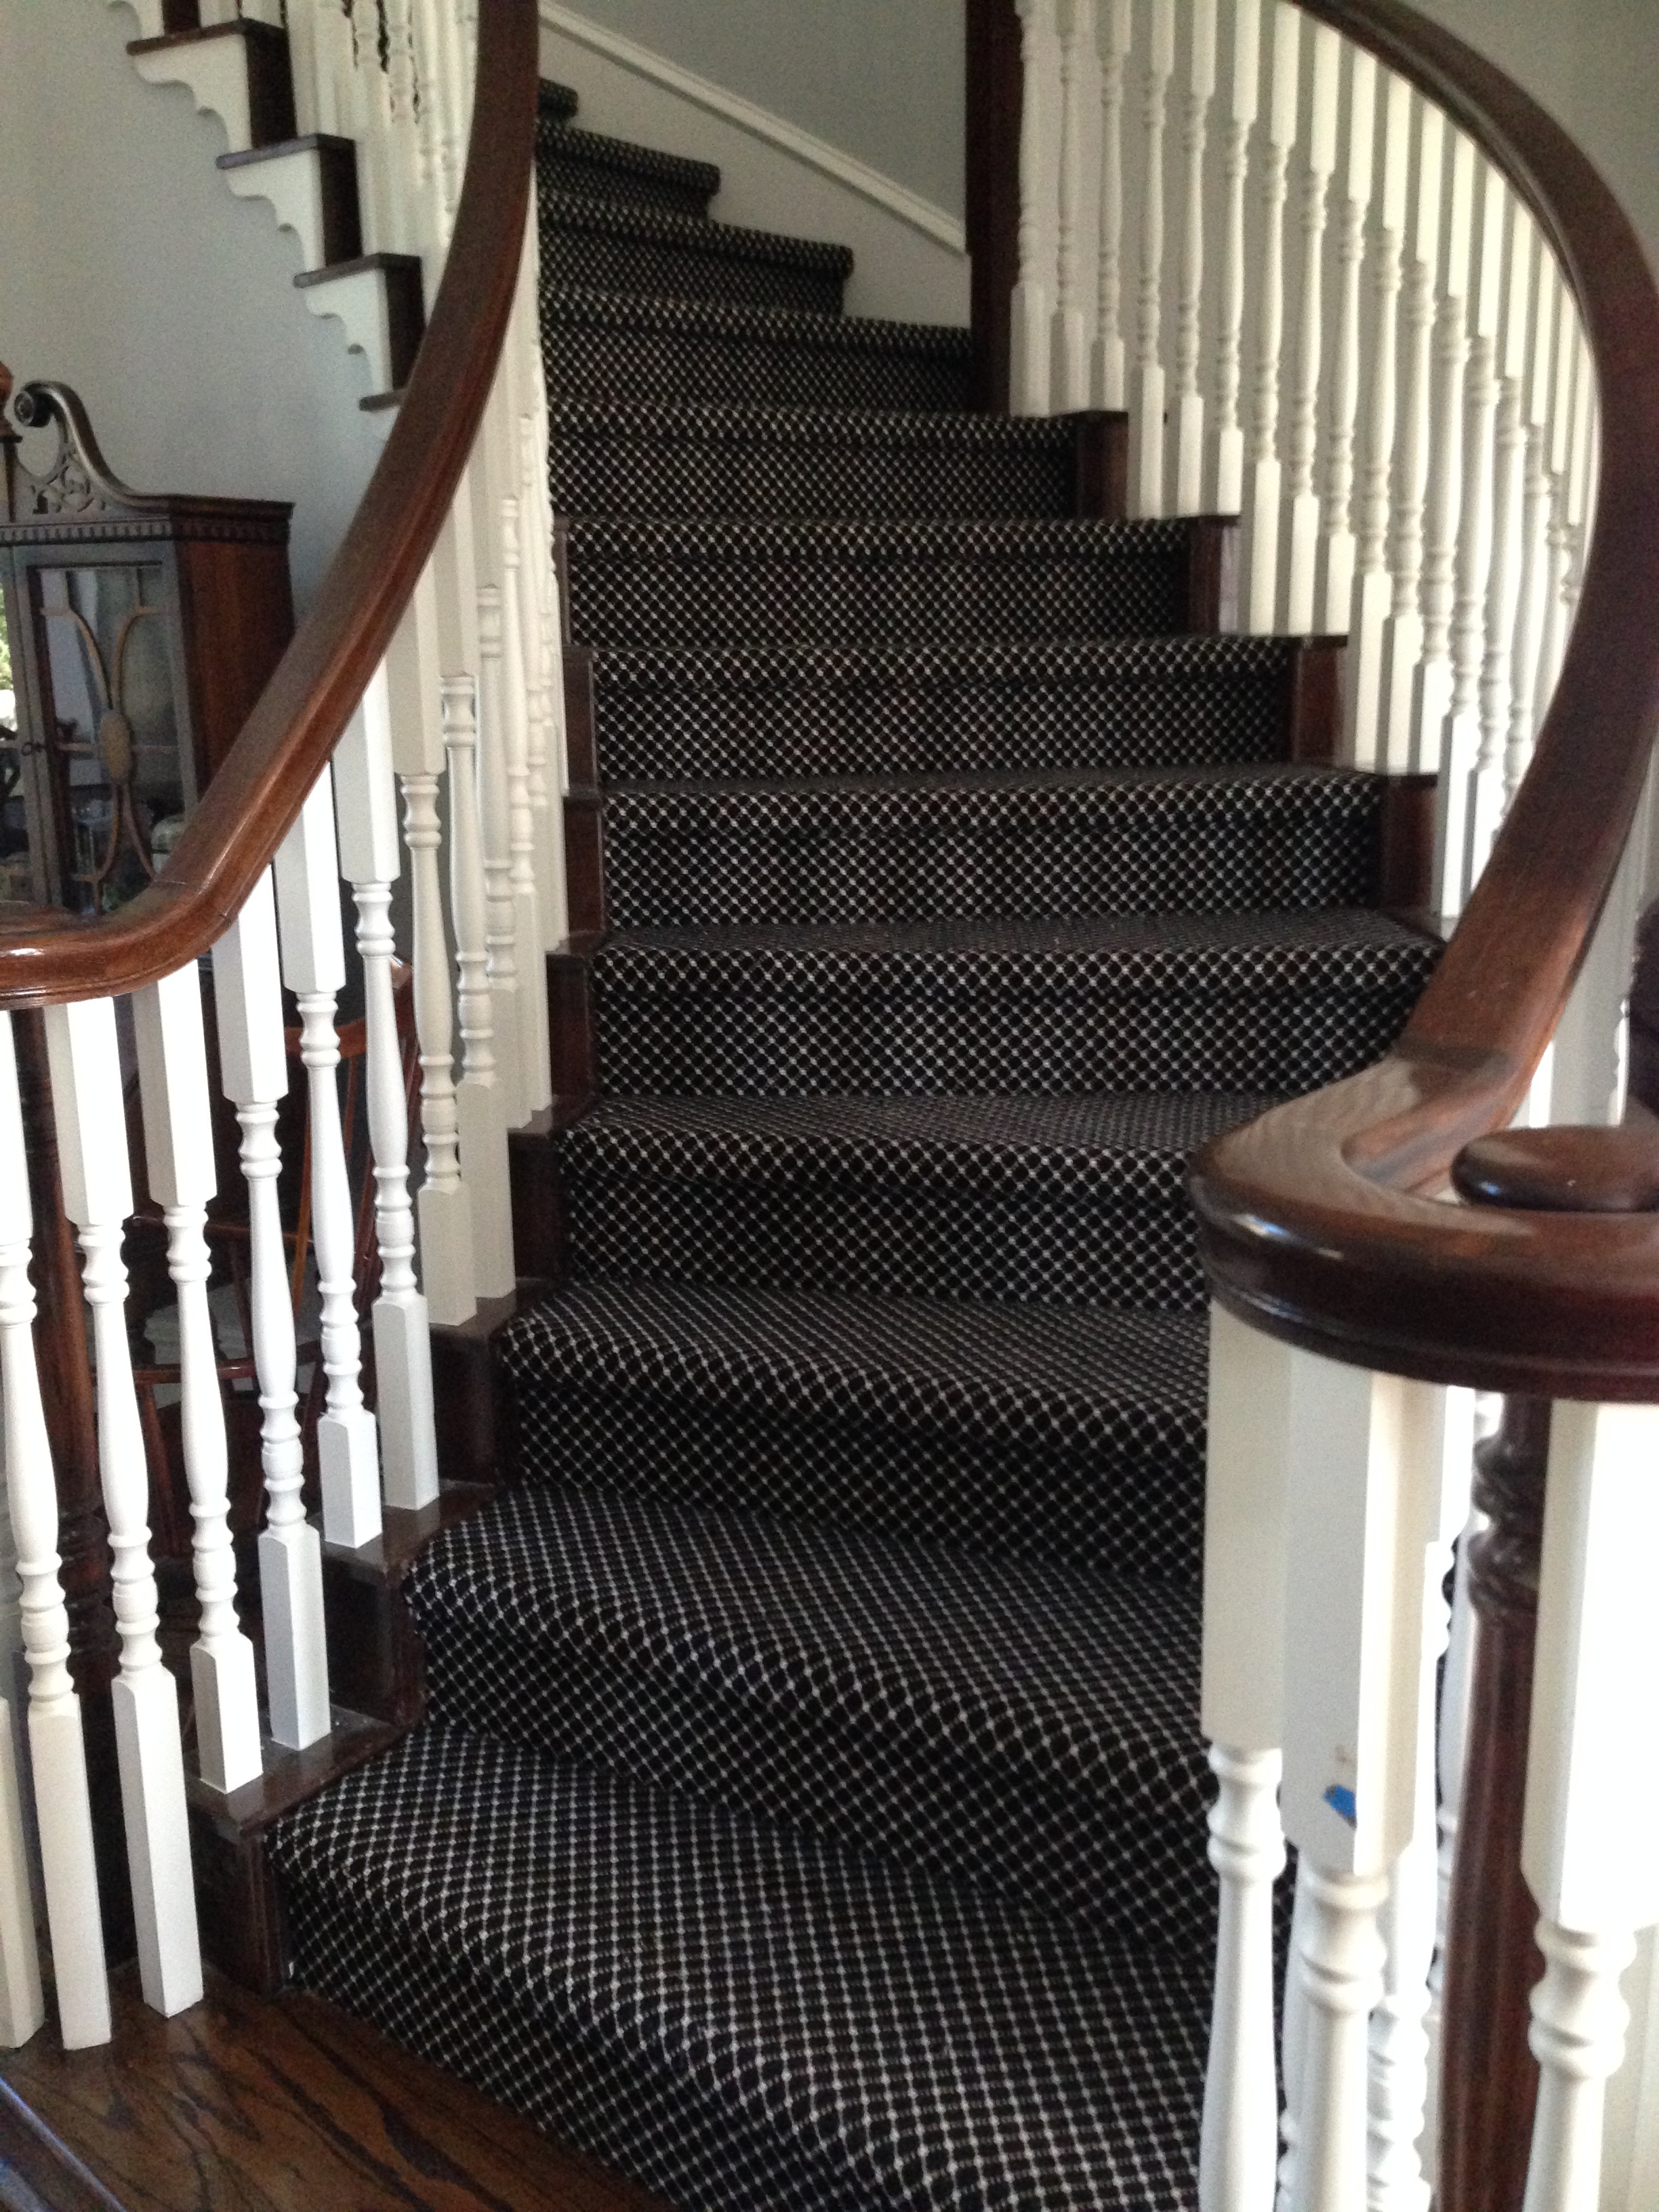 Should I Carpet My Stairs With The Same Carpet I Use Upstairs | Best Kind Of Carpet For Stairs | Rug | Hardwood | Stair Runners | Hallway | Berber Carpet